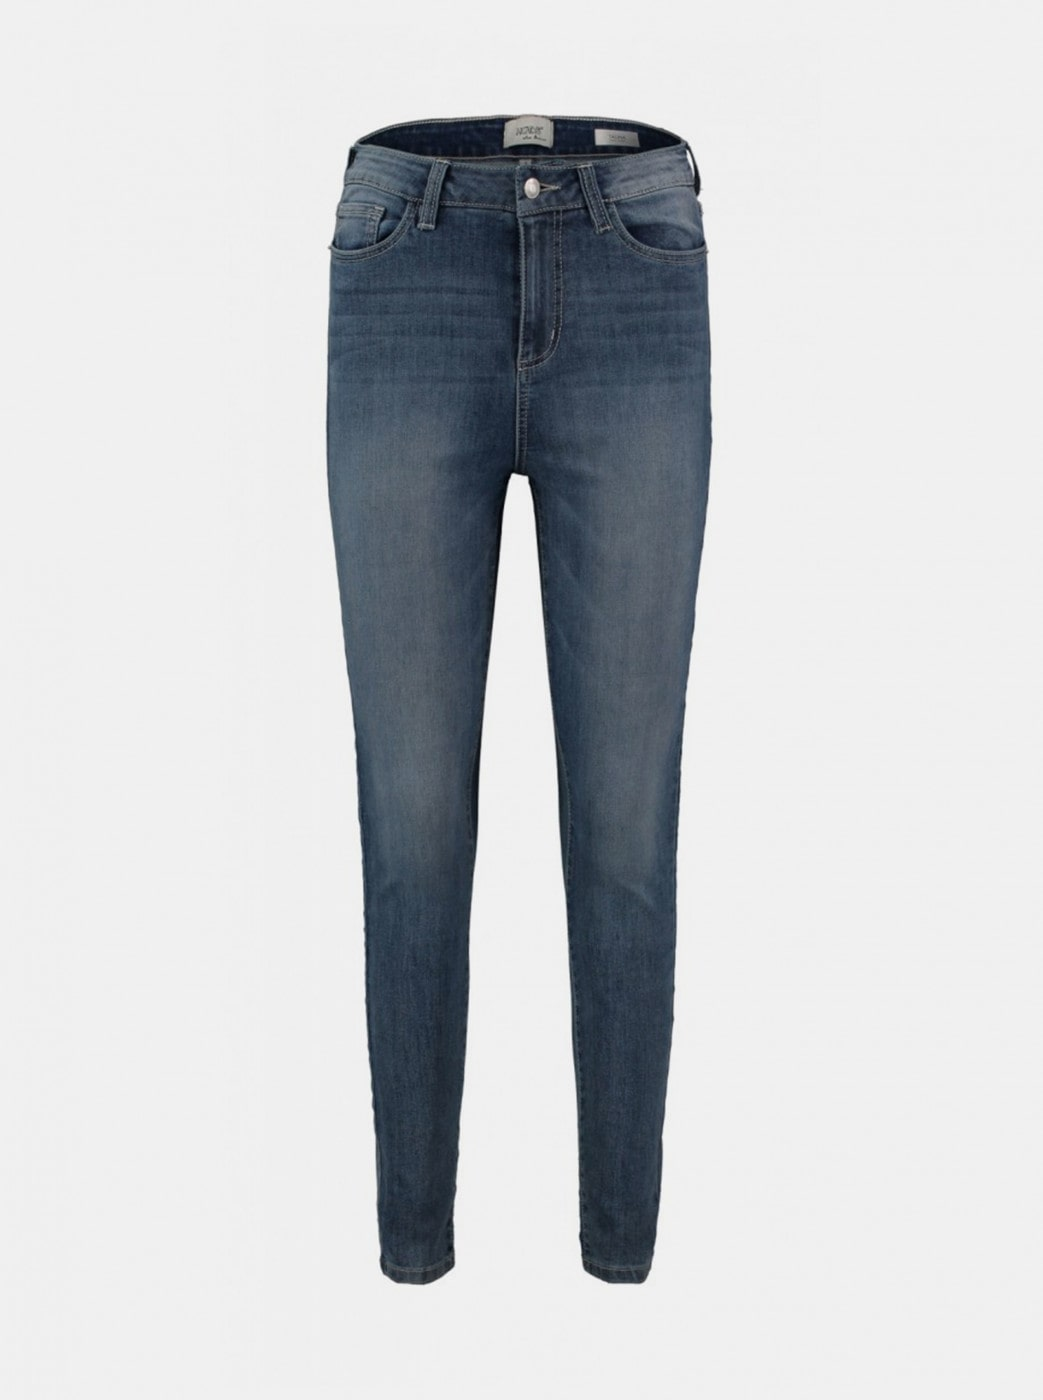 Blue Women's Skinny Fit Jeans Haily's